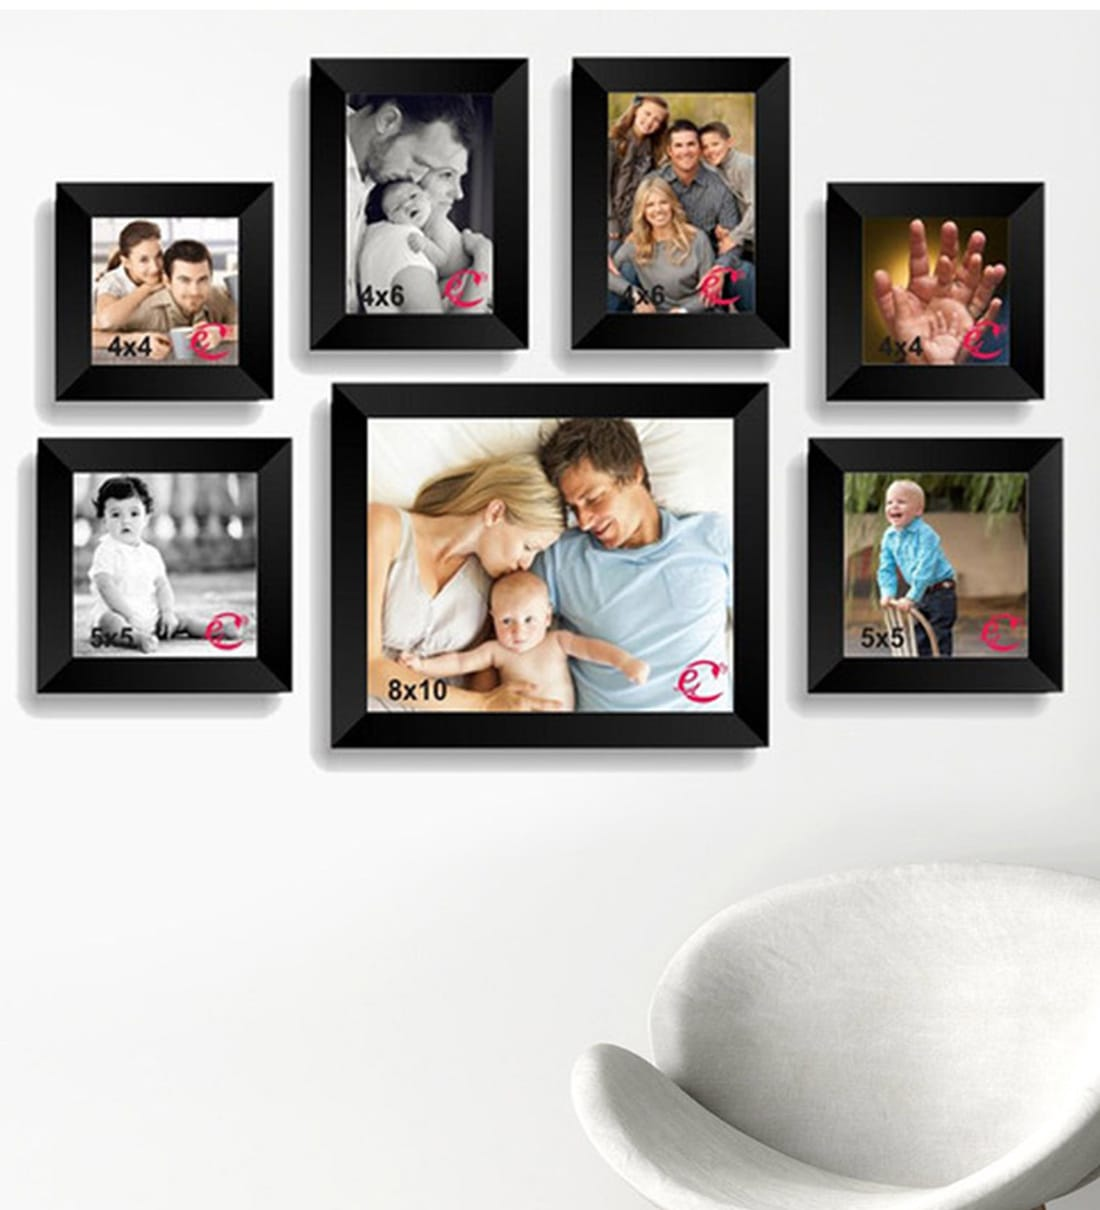 Buy Black Wood Wall Collage Photo Frame Set Of 7 By Ecraftindia Online Collage Photo Frames Photo Frames Home Decor Pepperfry Product